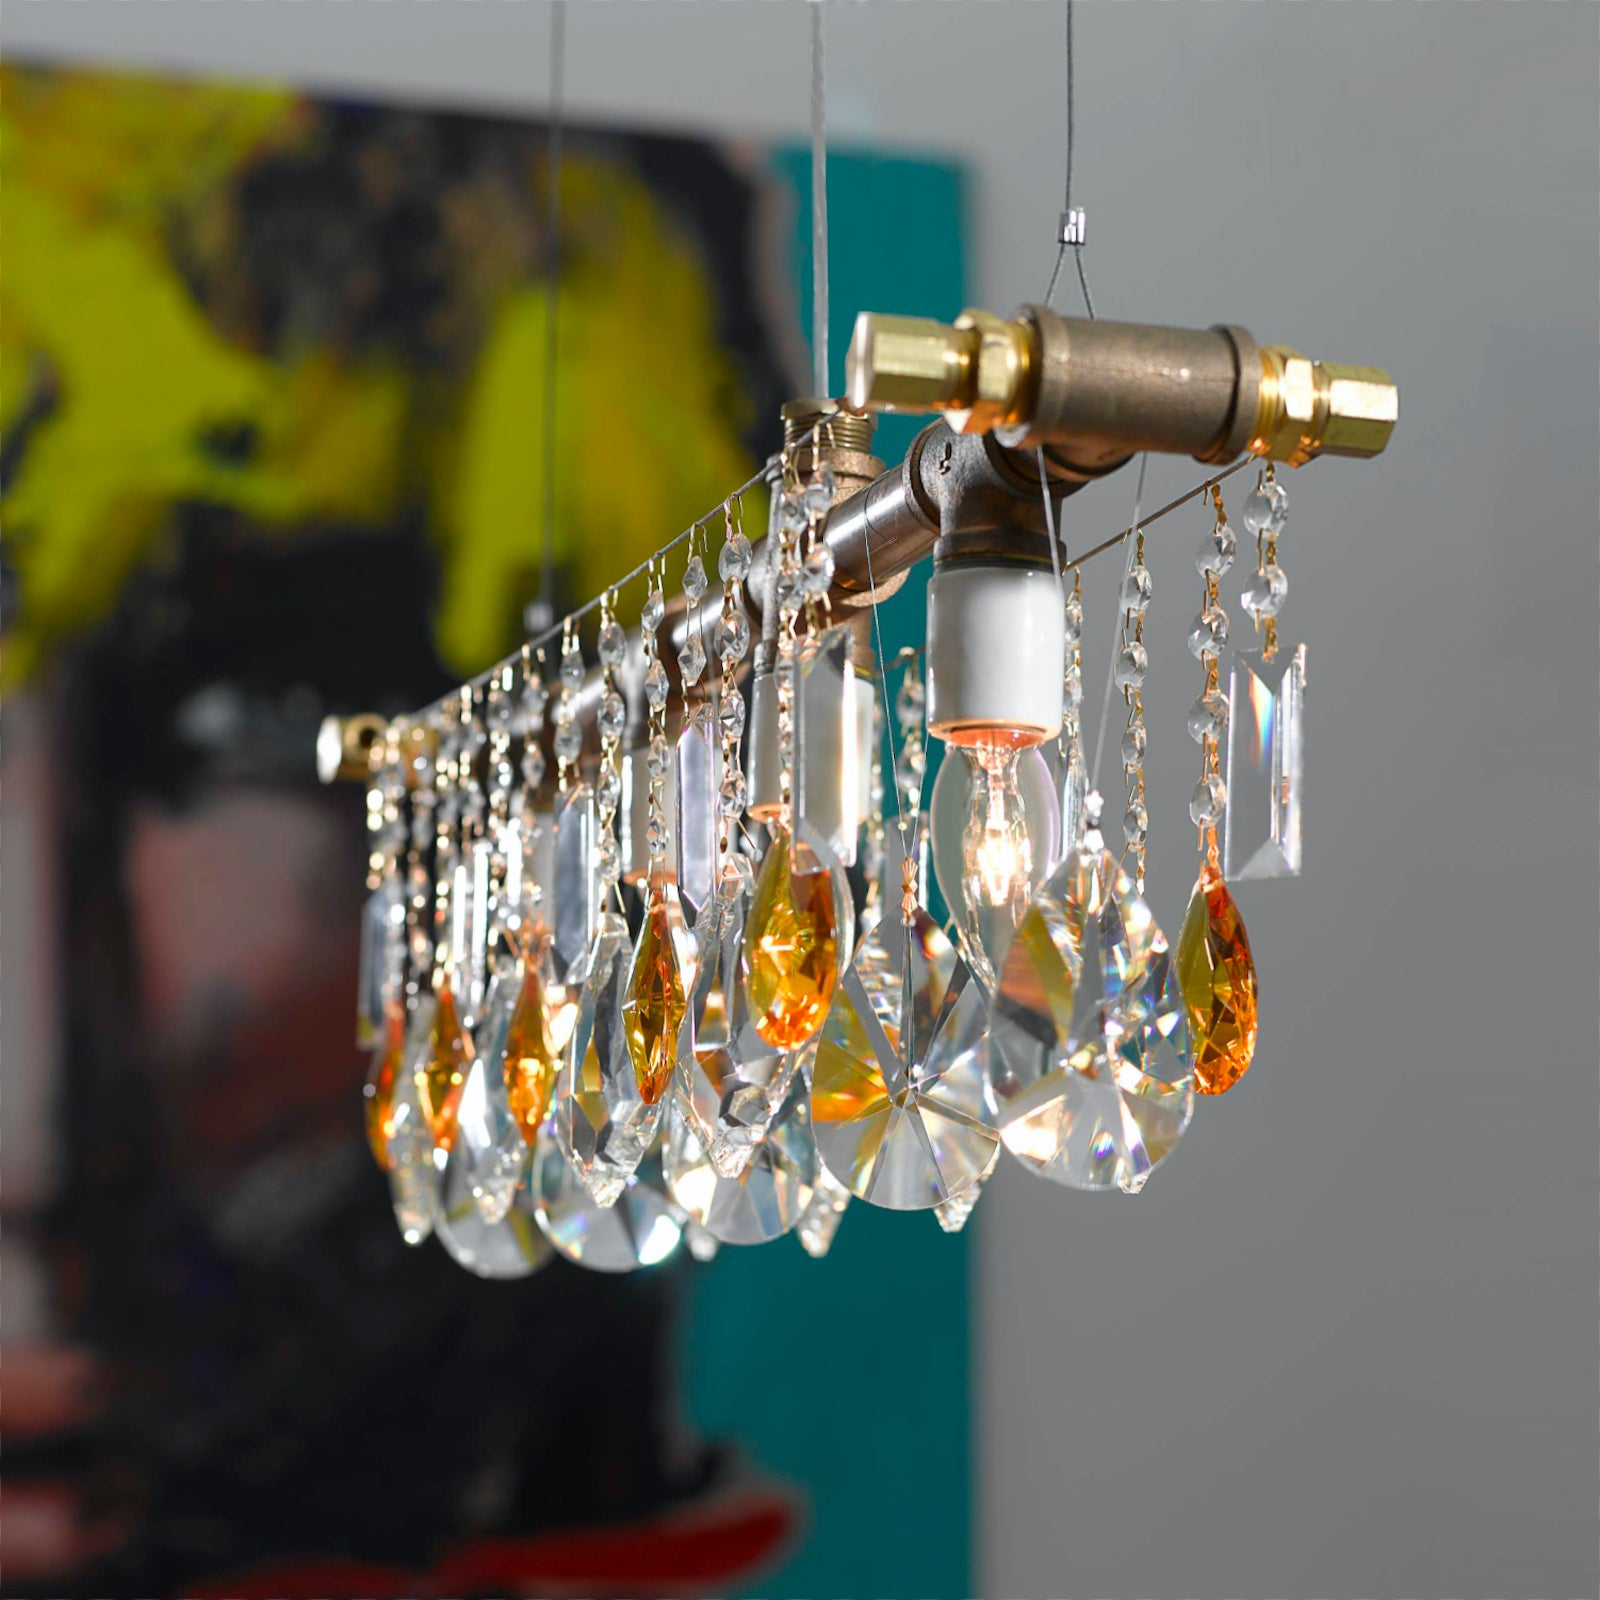 The Industrial 5-Bulb Bar Chandelier in Bronze